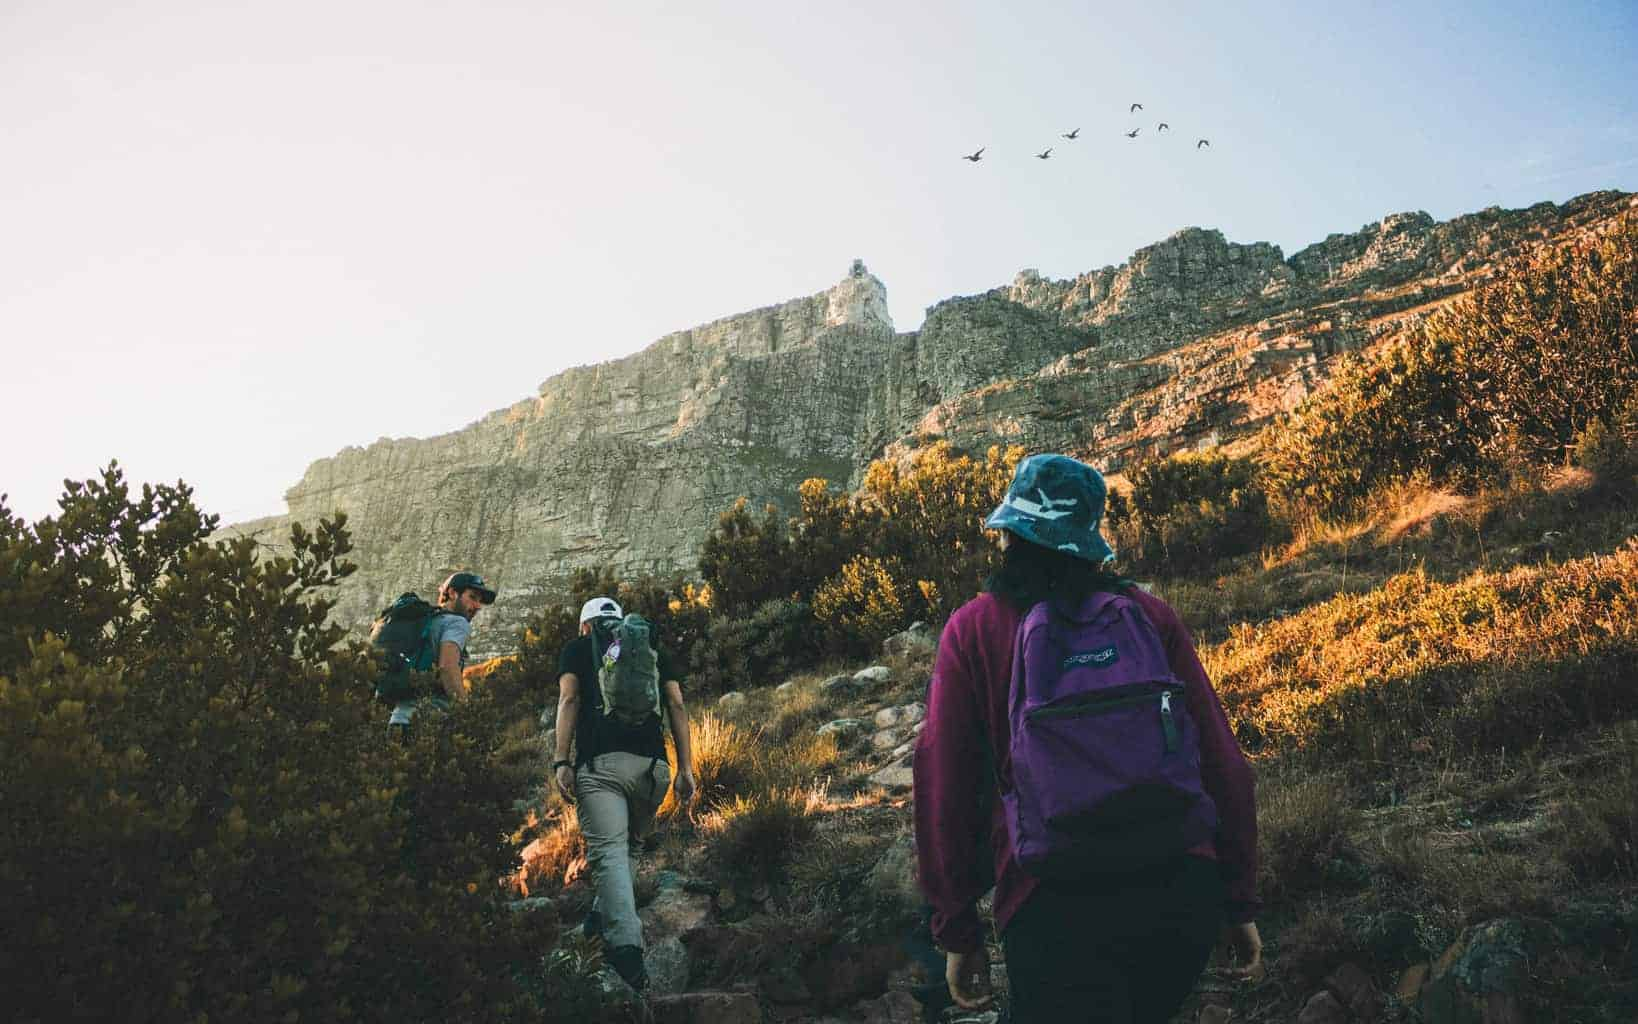 people hiking with jansport backpacks for hiking